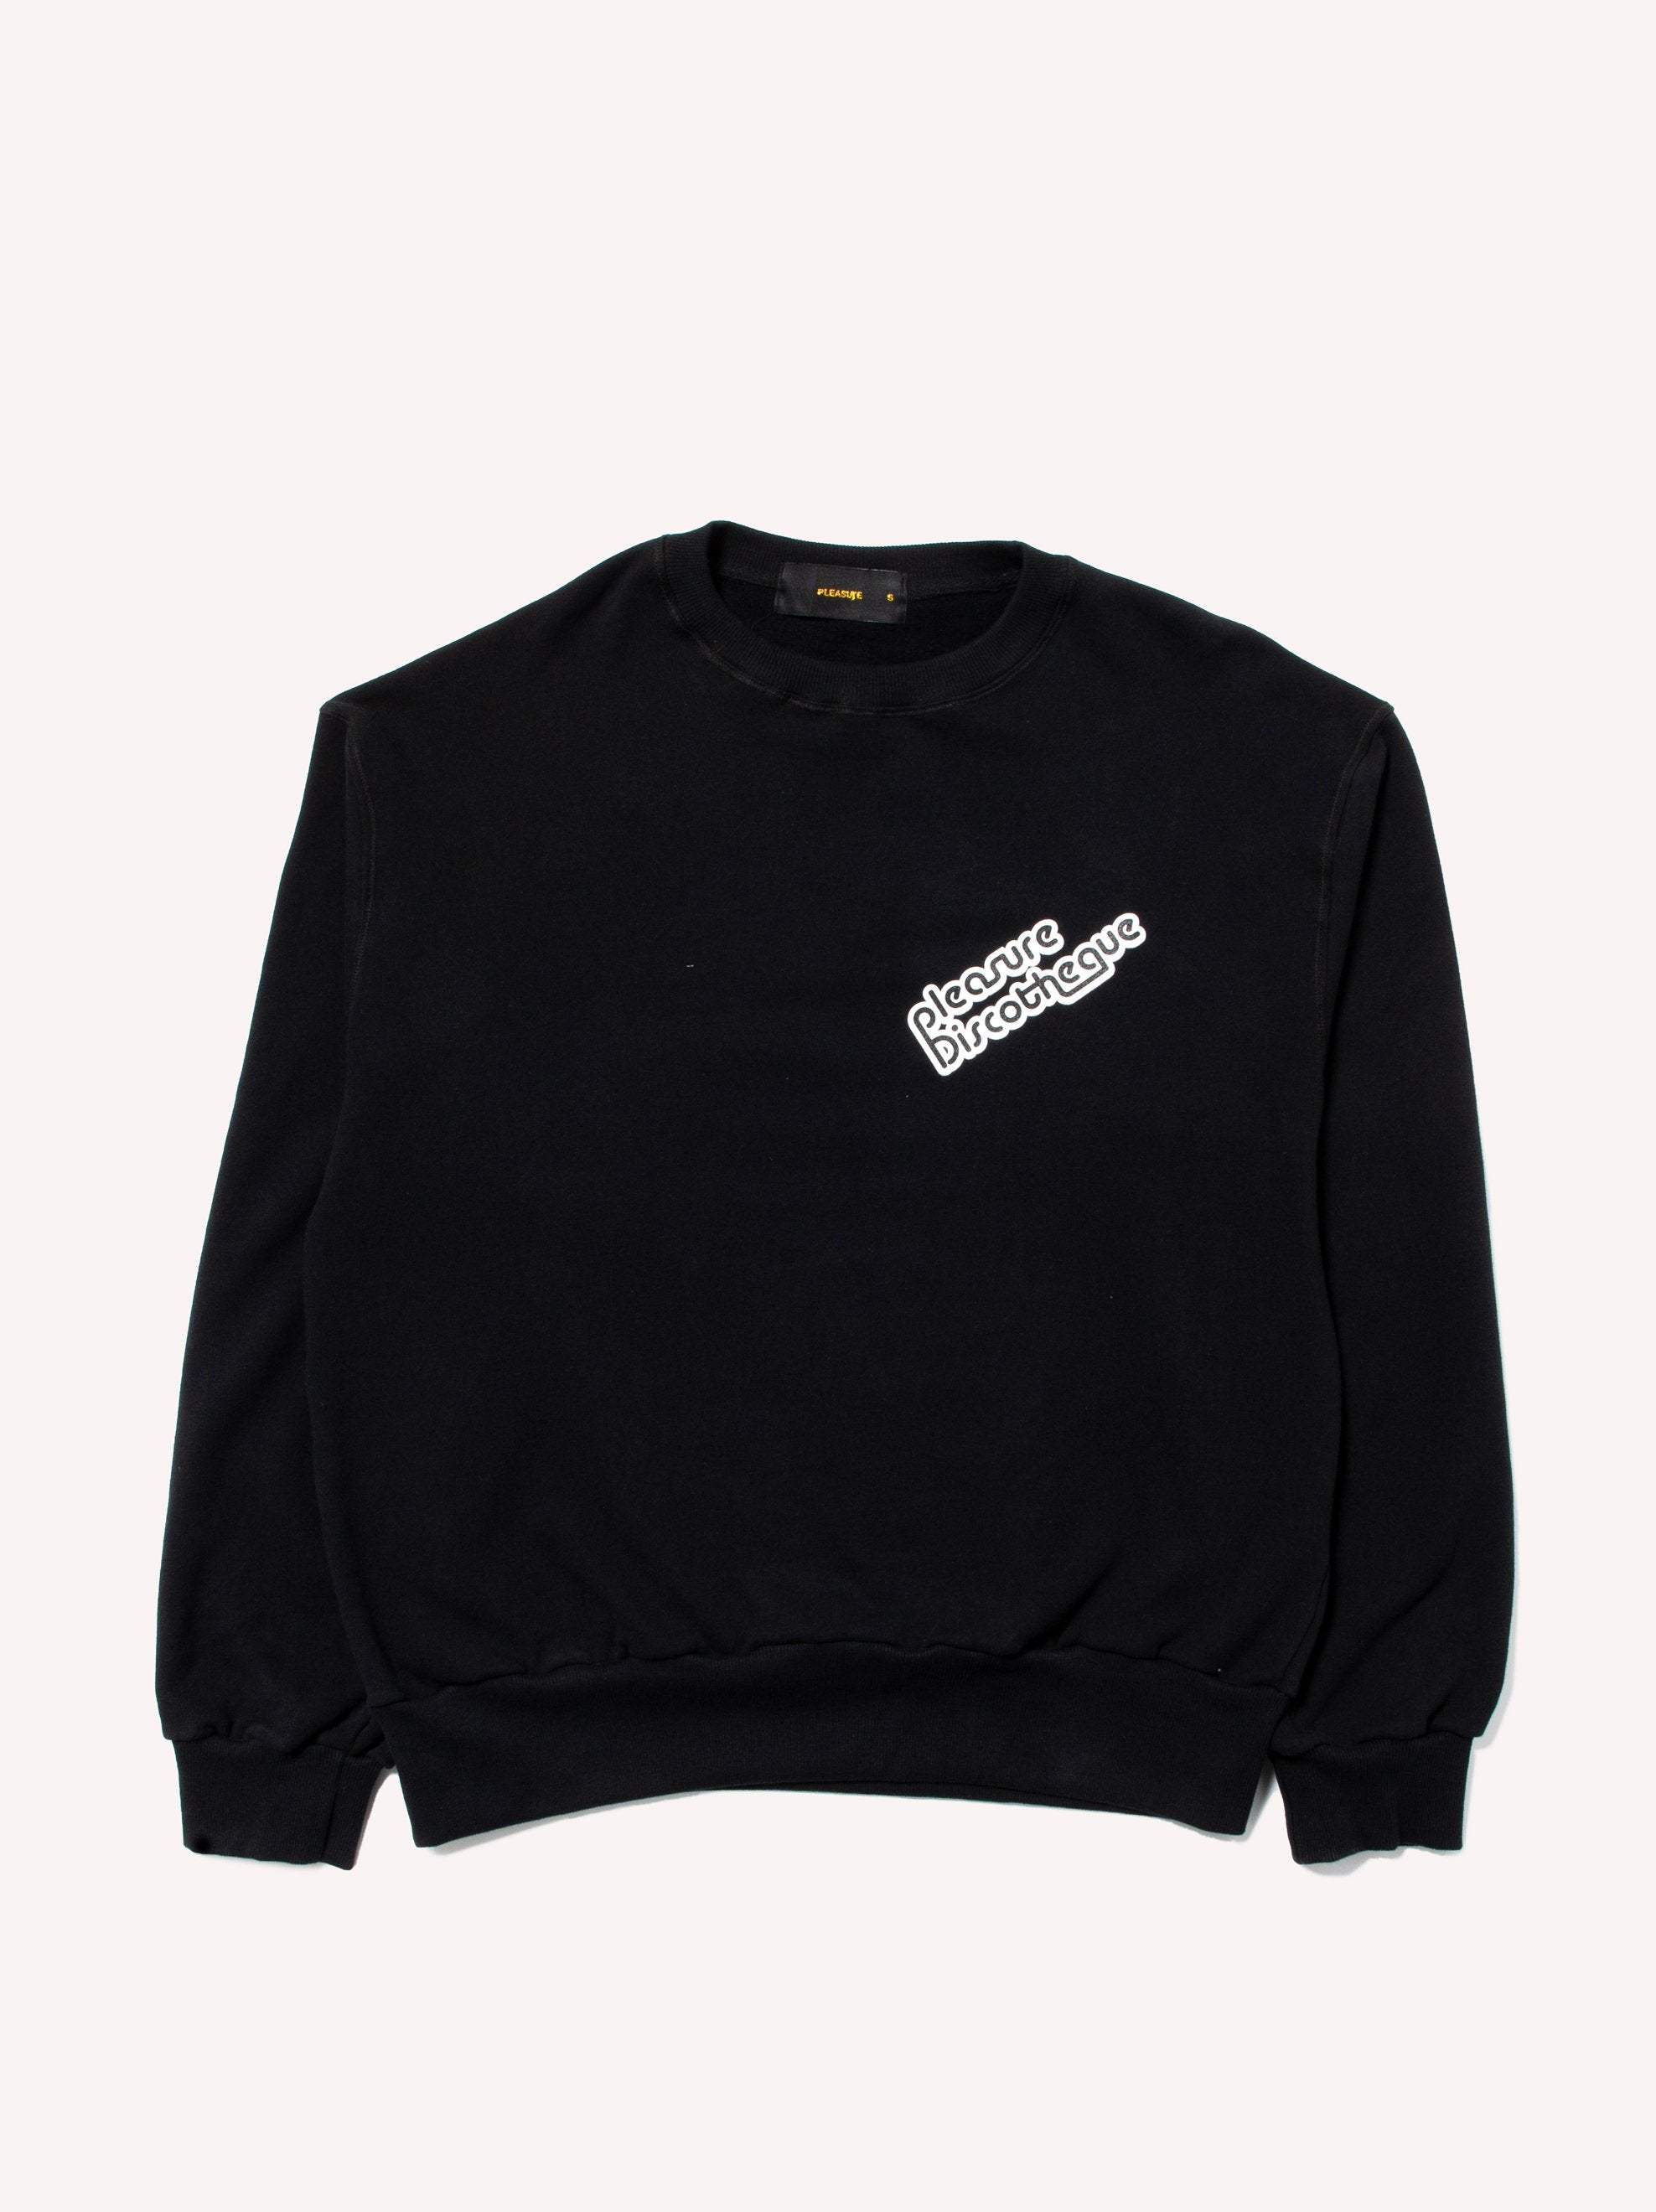 Black Feelin' Good Sweatshirt 1